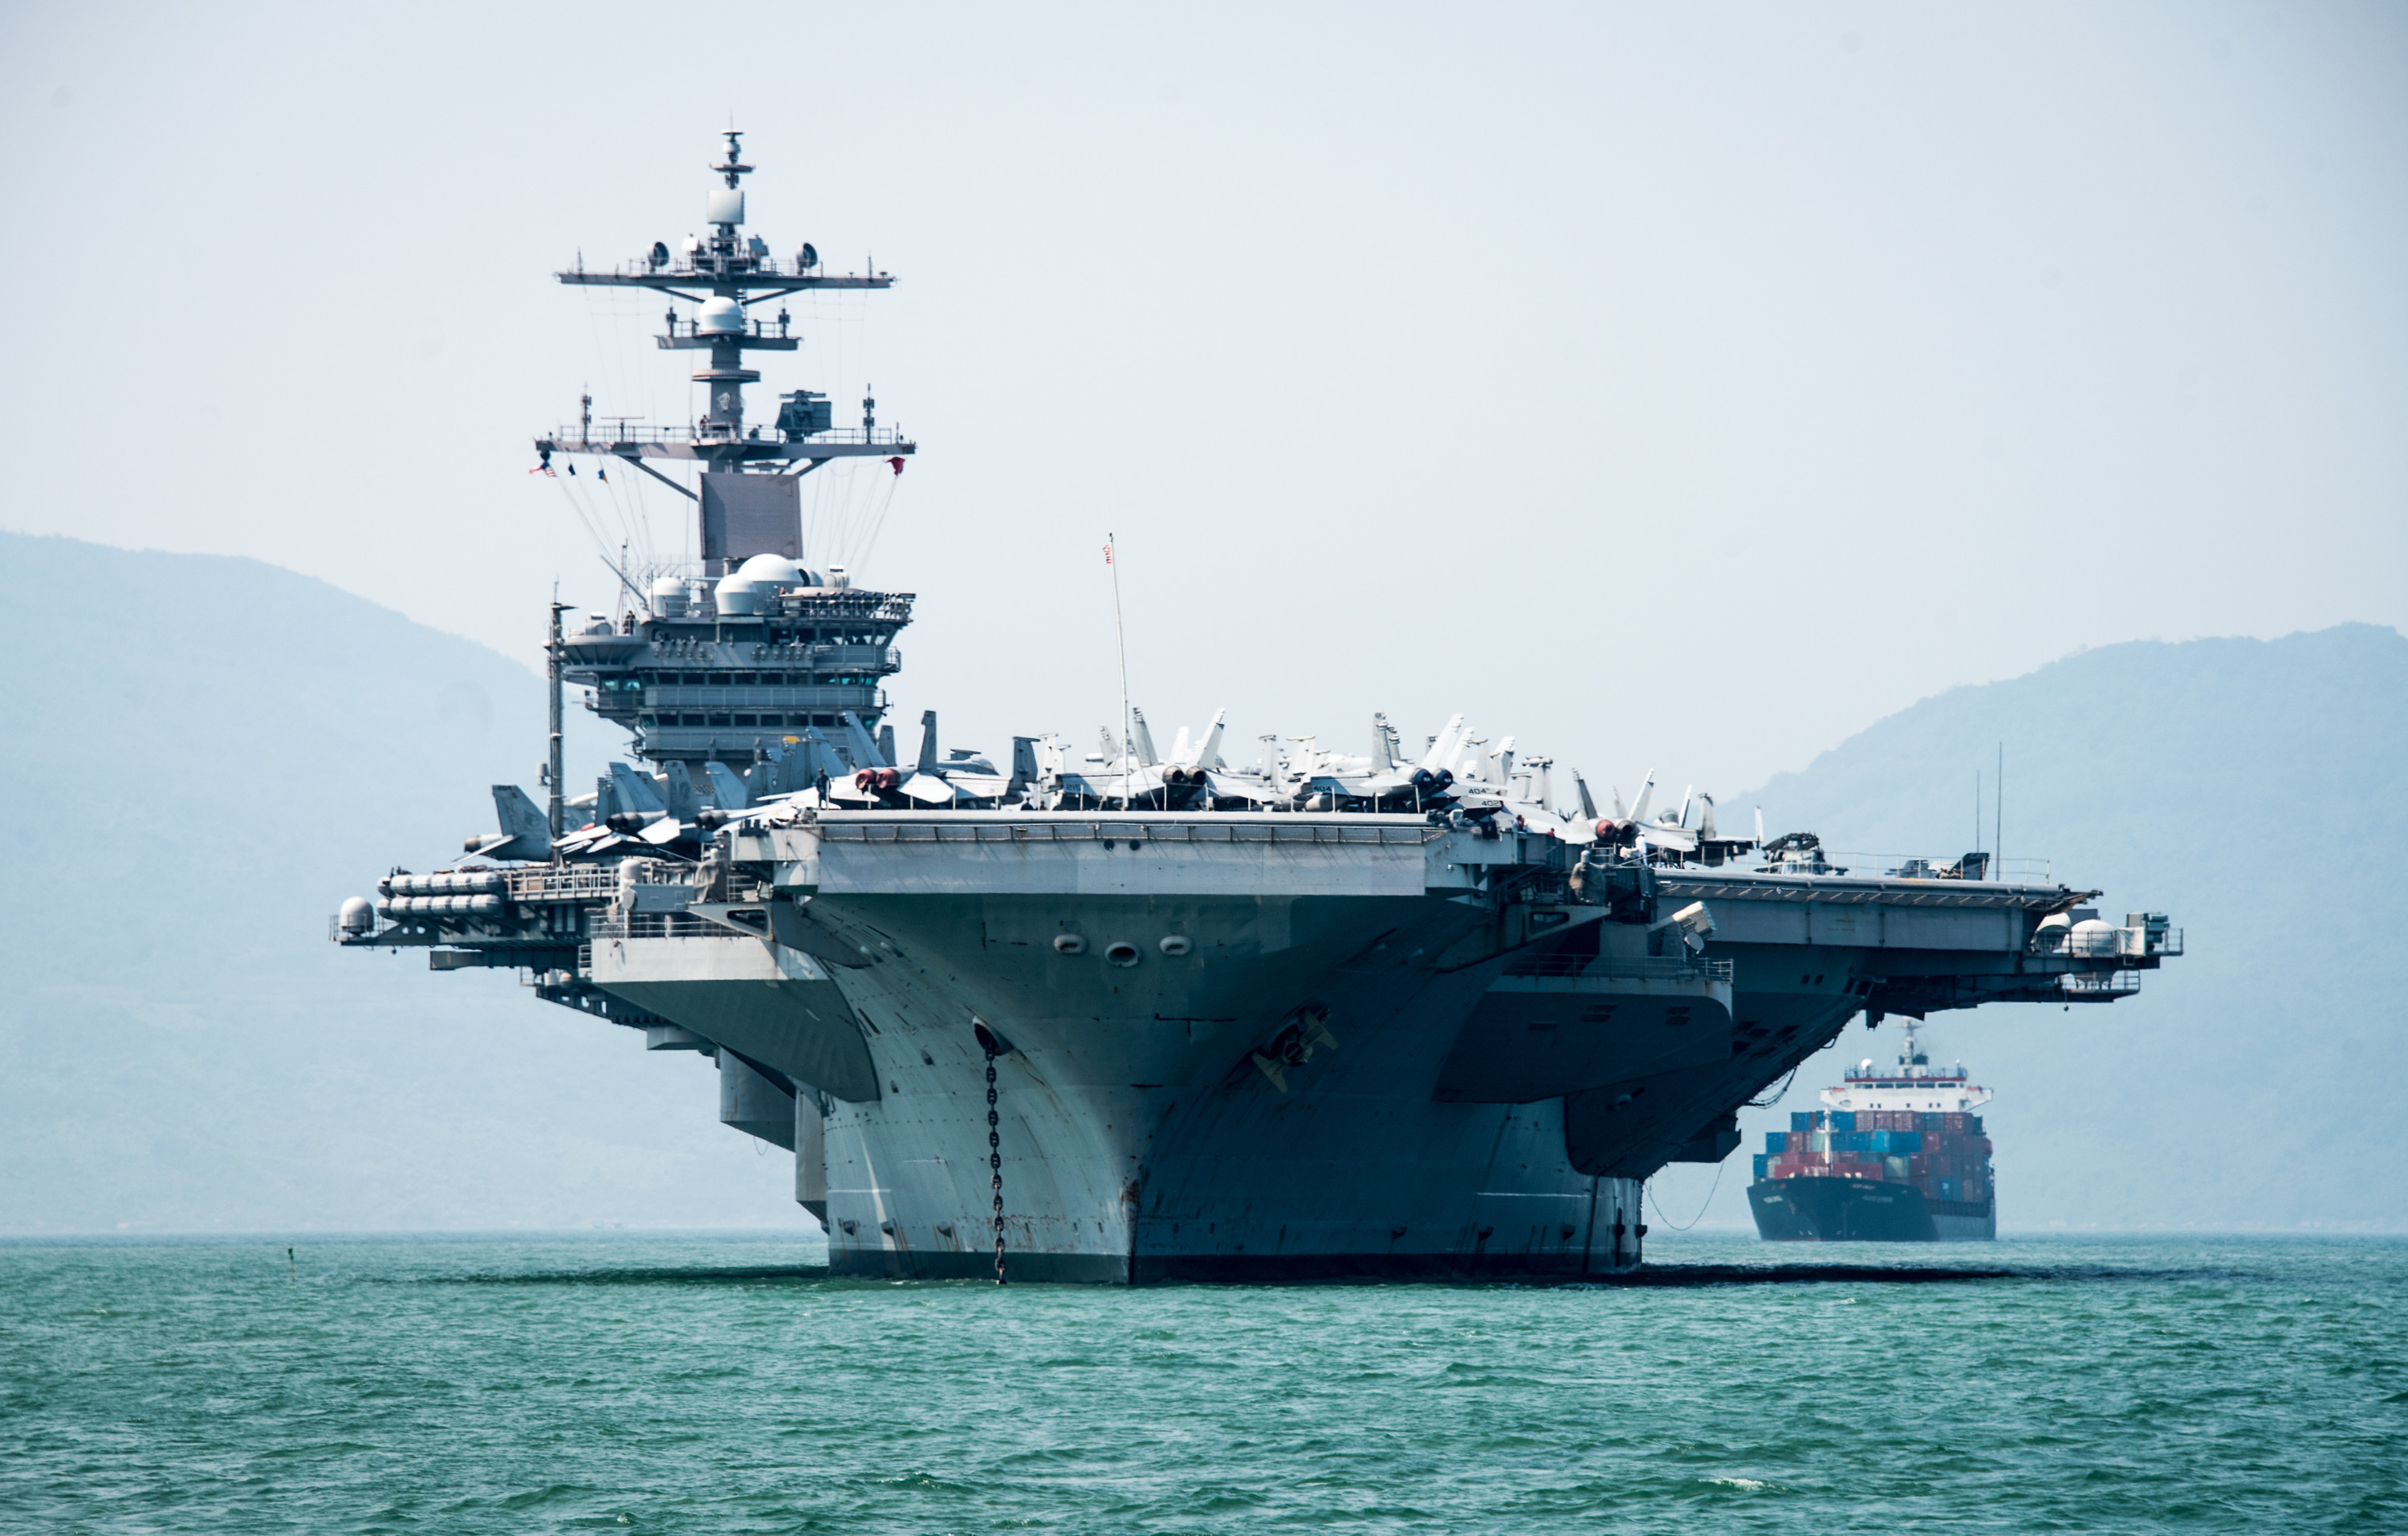 180305-N-BS159-0039 DA NANG, Vietnam (March 5, 2018) The Nimitz-class aircraft carrier USS Carl Vinson (CVN 70) arrives in Da Nang, Vietnam for a scheduled port visit. The Carl Vinson Strike Group is in the Western Pacific as part of a regularly scheduled deployment. (U.S. Navy photo by Mass Communication Specialist 3rd Class Devin M. Monroe/Released)